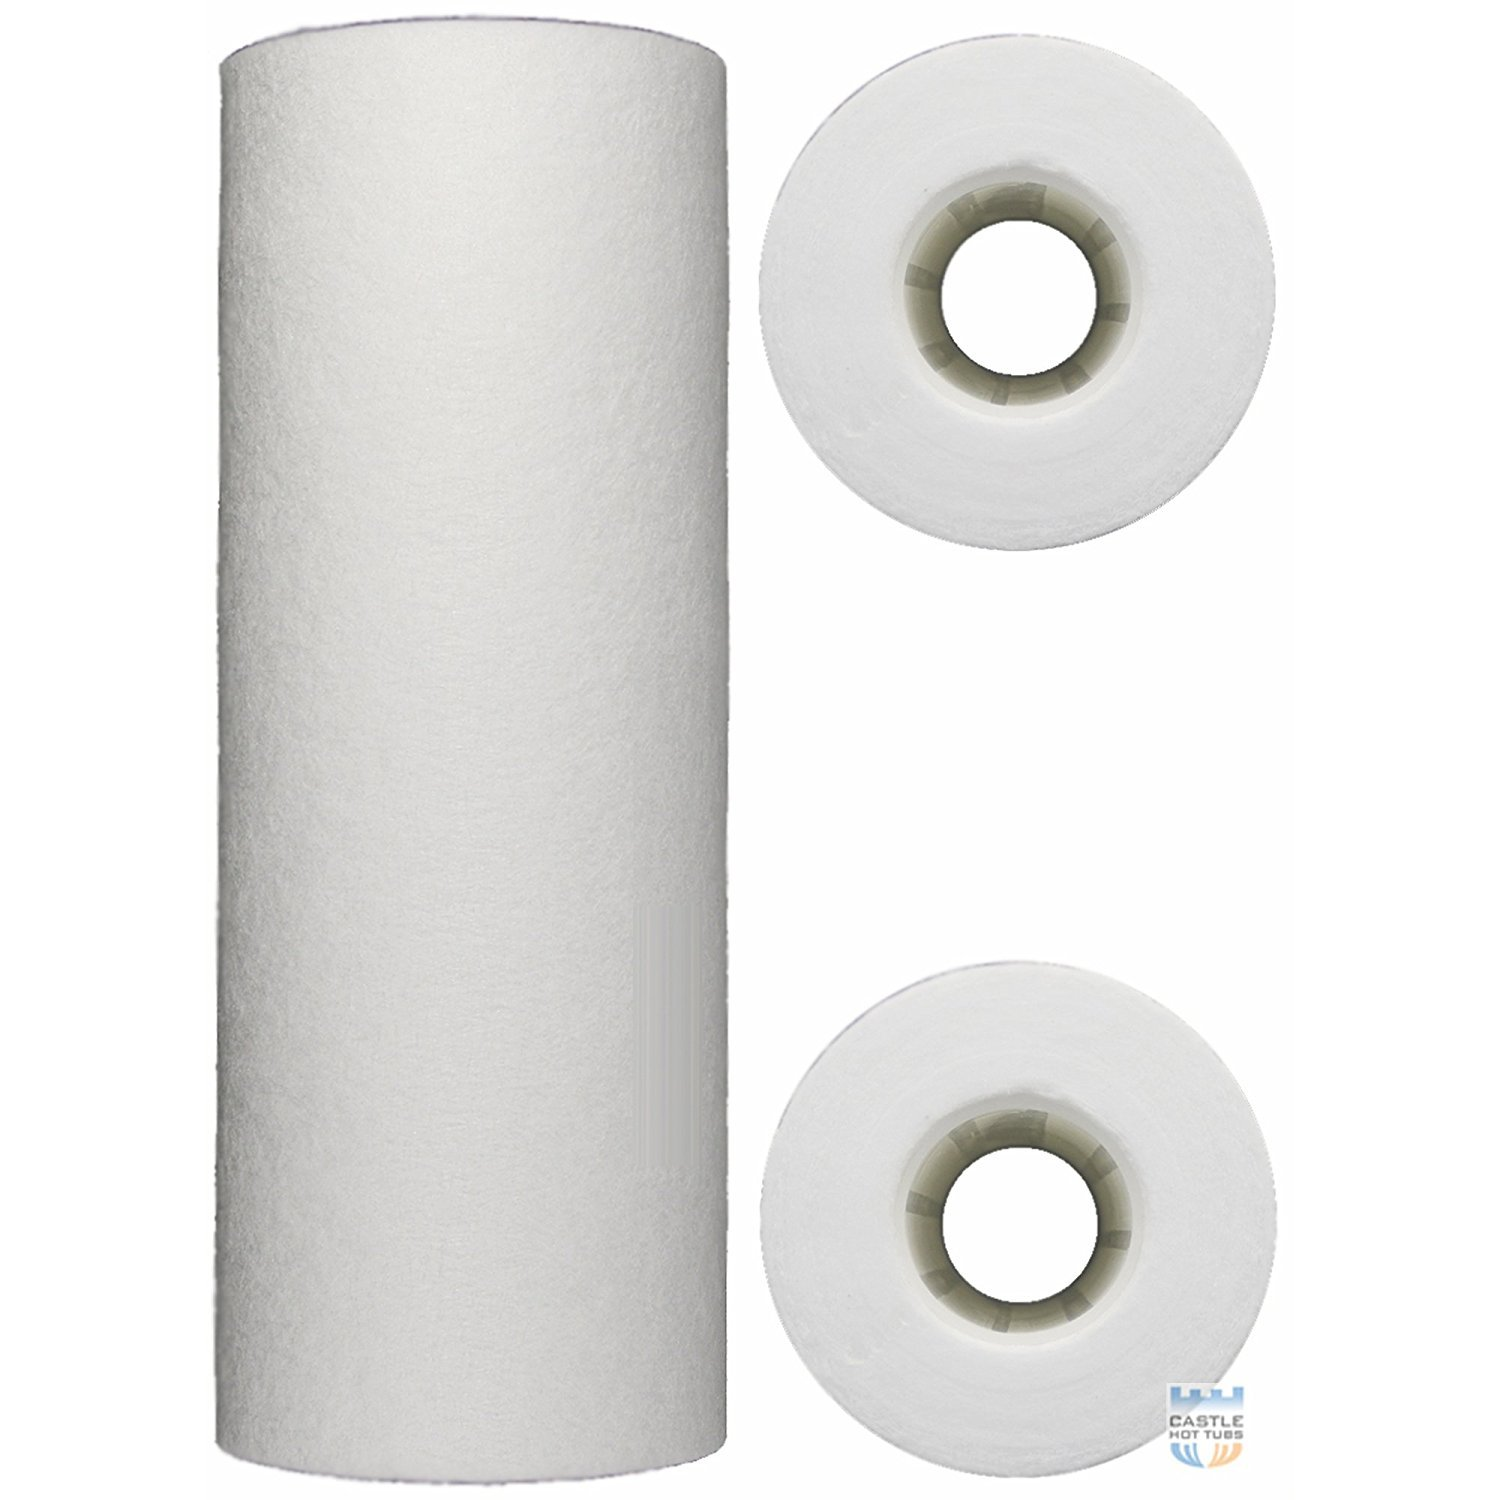 Disposable Spa Filter for C-4950 and C-4326, SC723 Darlly